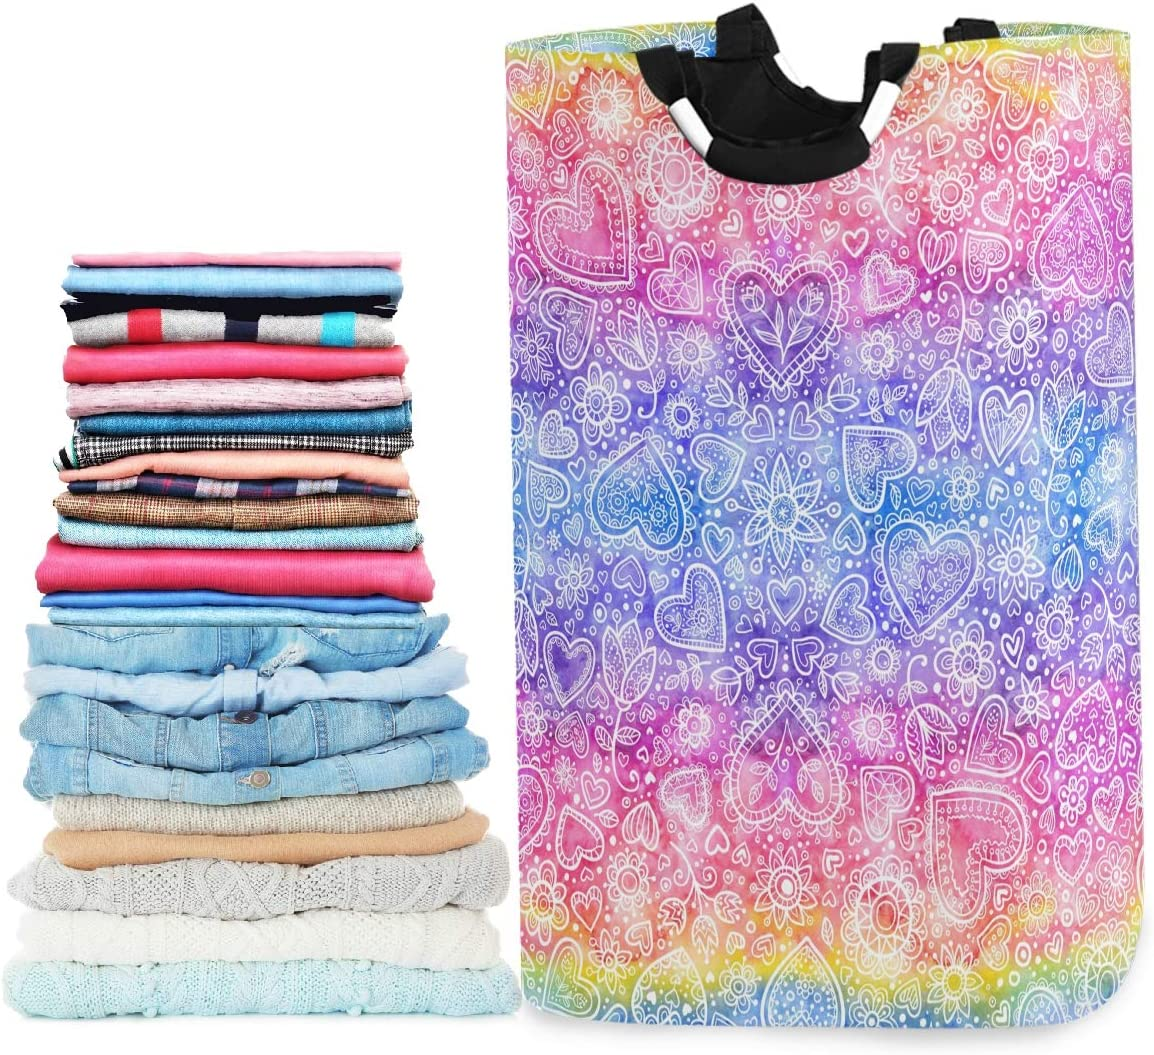 visesunny Collapsible Laundry Basket Heart Rainbow Large Laundry Hamper Oxford Fabric Dirty Clothes Toy Organizer with Handle for Bathroom Kids Room Dorm